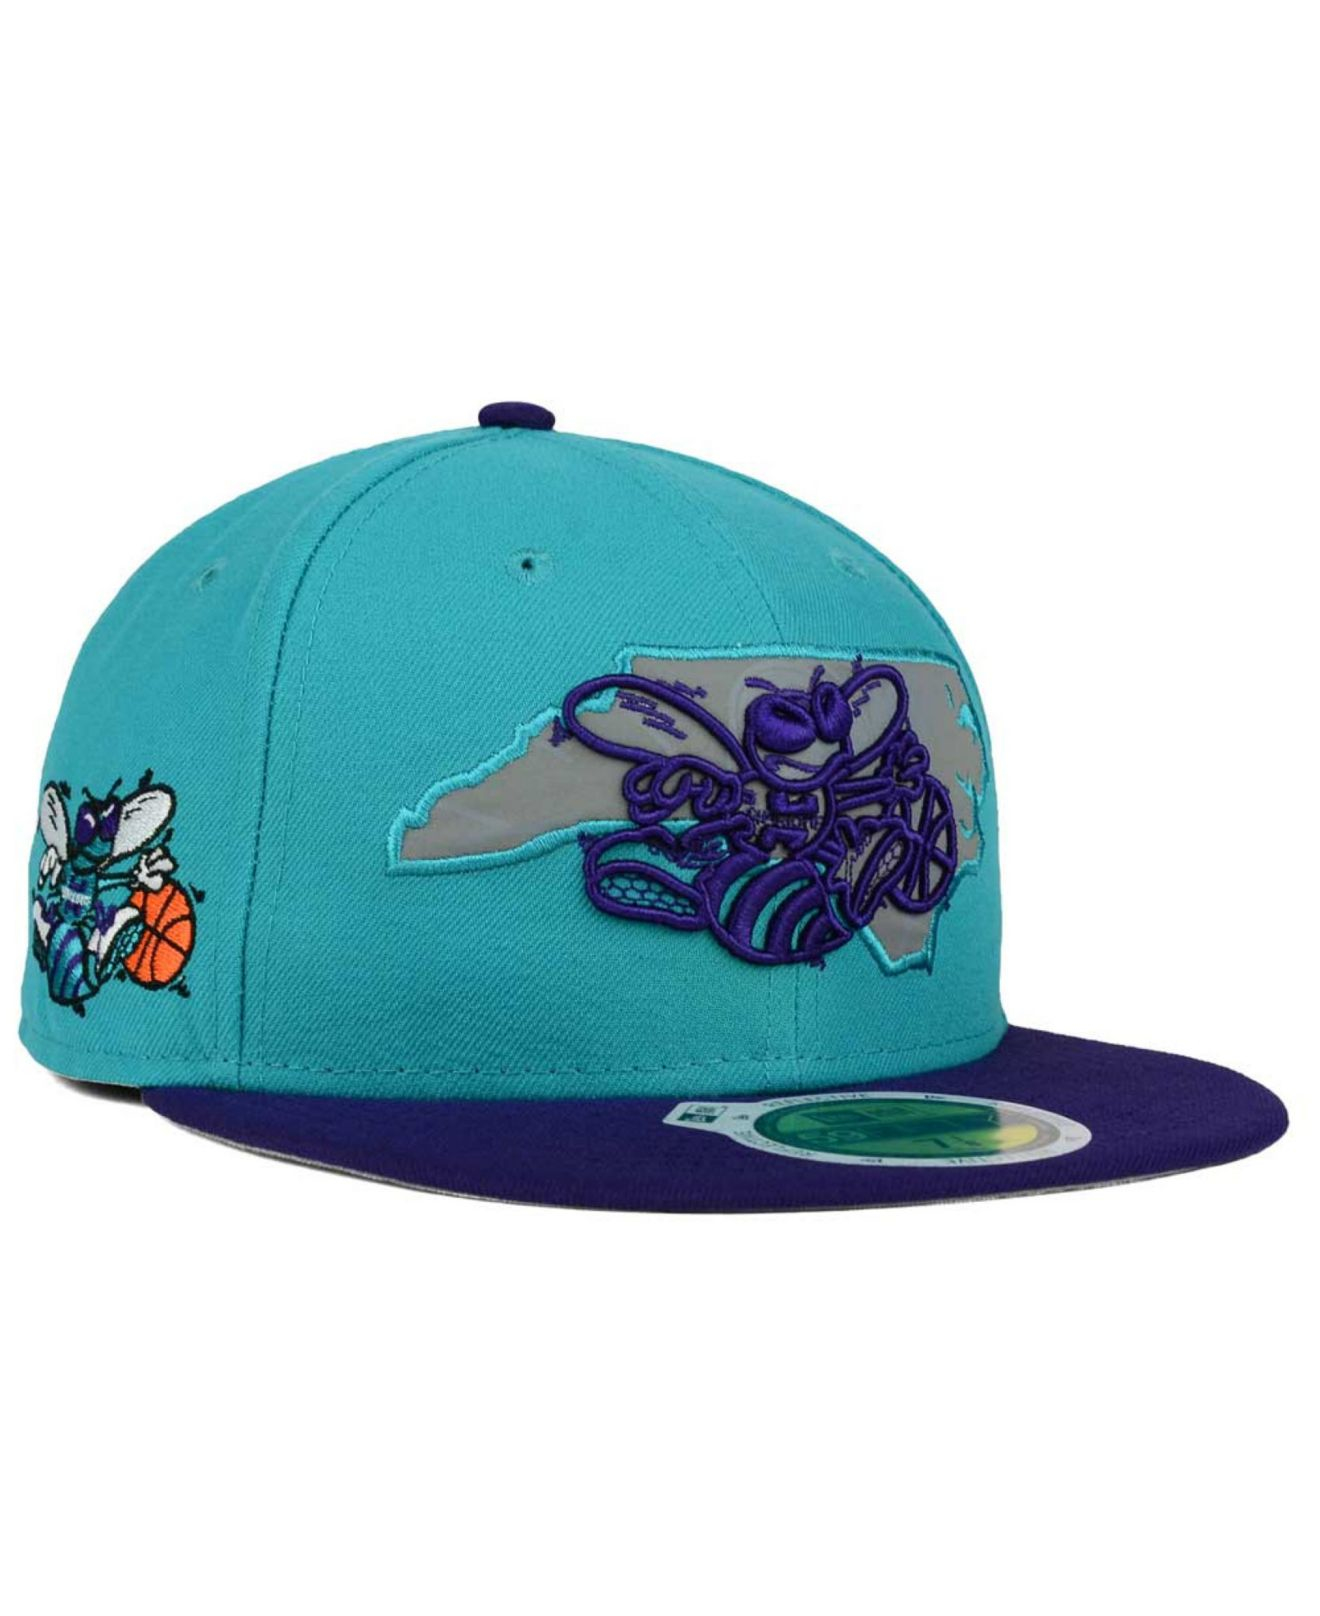 timeless design f9bd1 f2c86 ... promo code for lyst ktz charlotte hornets state reflective redux 59fifty  cap in 768bc 547a7